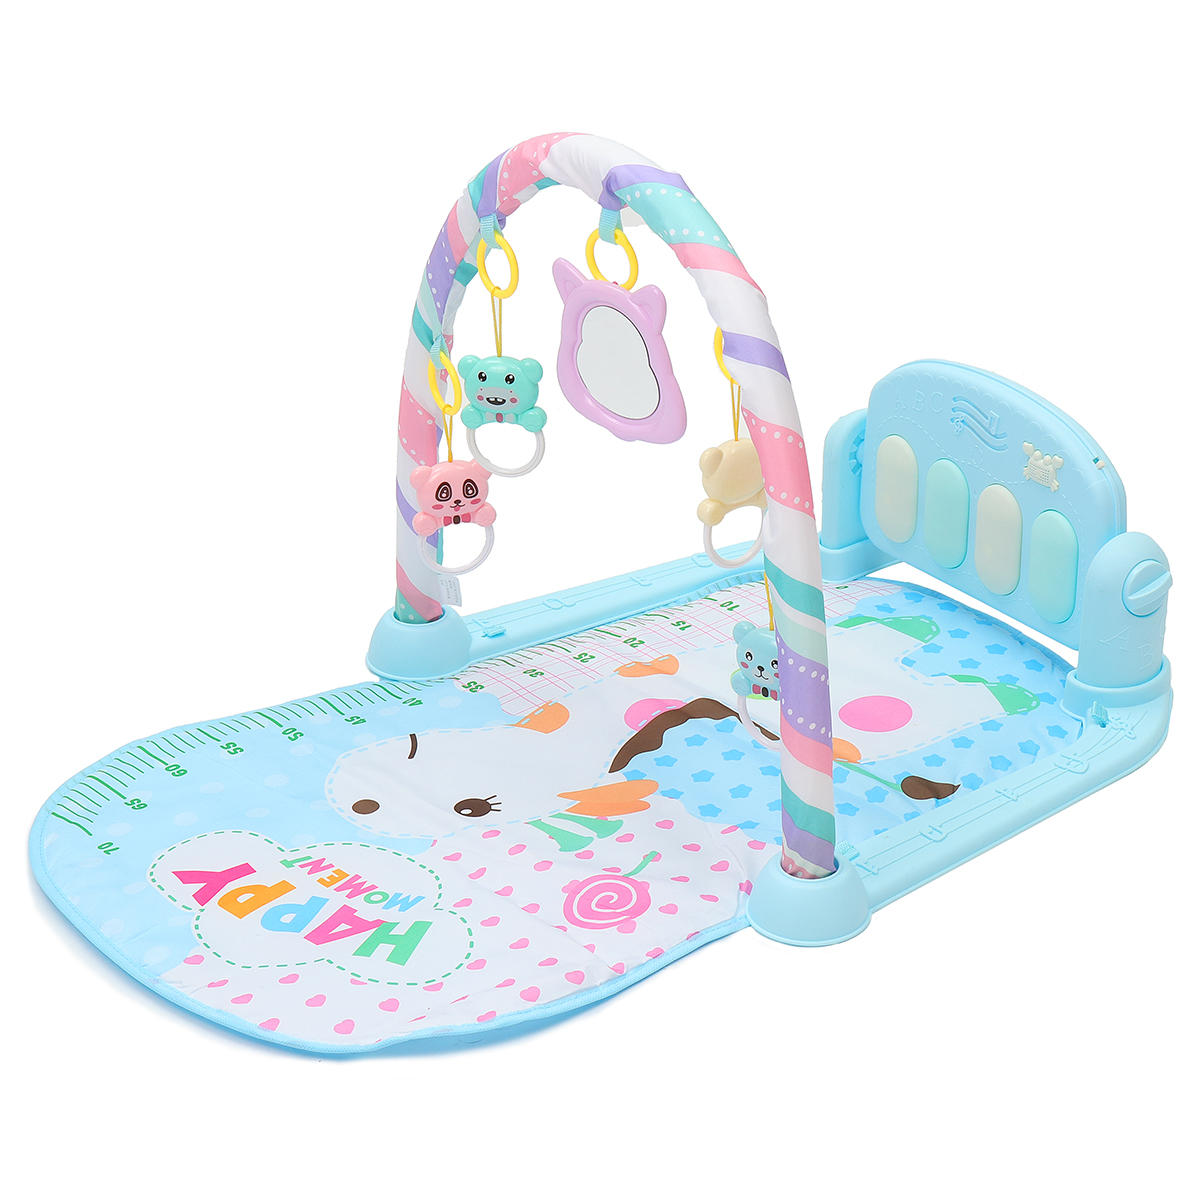 Baby Play Mat Gym Fitness Music Lights Fun Piano Boy Girl Rack Early Education - 3